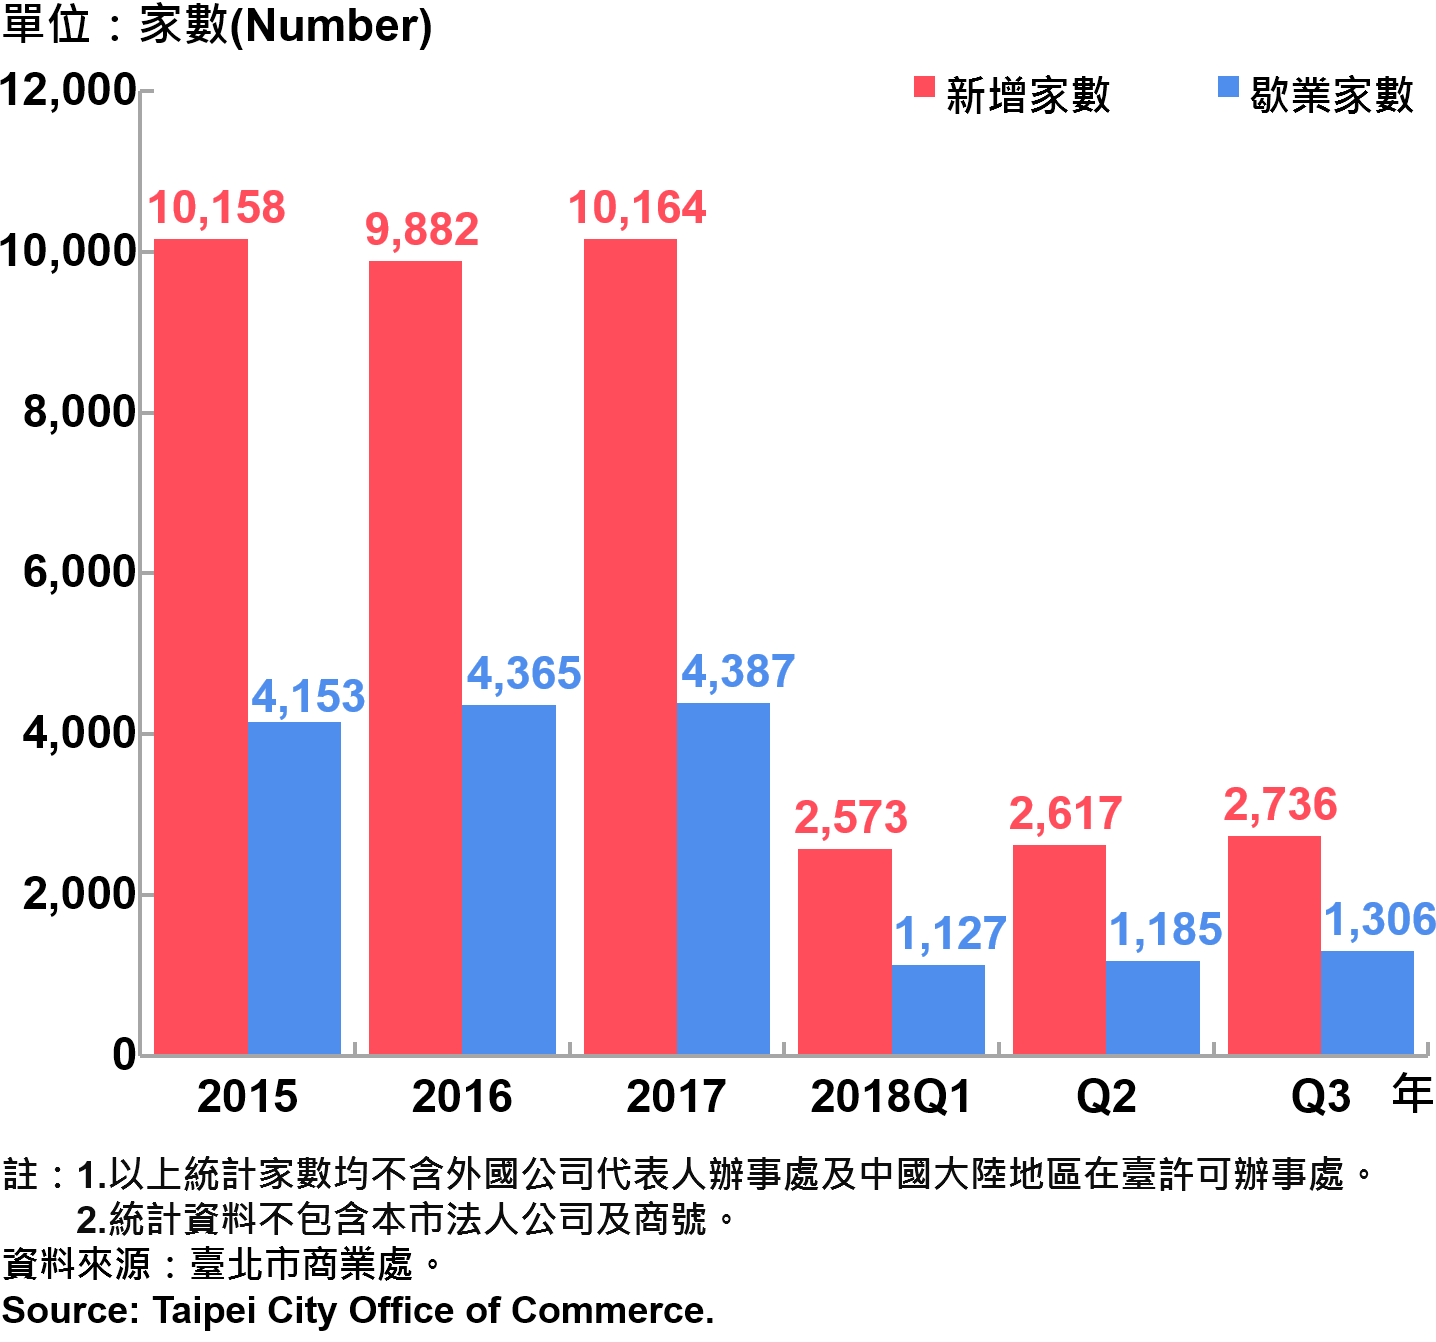 臺北市公司行號之青創負責人分布情形—依新增及歇業家數—2018Q3 Responsible Person of Newly Registered Companies In Taipei City - Number of Incorporation/ Termination—2018Q3